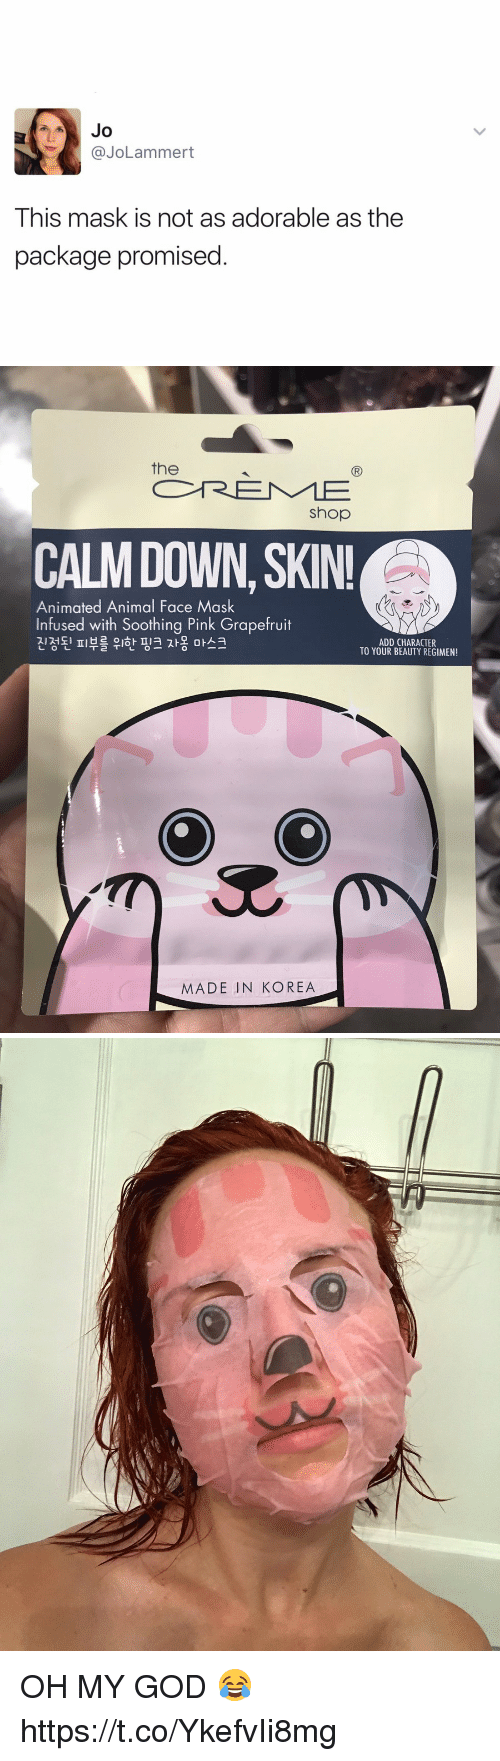 grapefruiting: Jo  Cayo Lammert  This mask is not as adorable as the  package promised   the  Shop  CALM DOWN, SKIN!  Animated Animal Face Mask  Infused with Soothing Pink Grapefruit  ADD CHARACTER  TT 2 T  L O L  TO YOUR BEAUTY REGIMEN!  MADE IN KOREA OH MY GOD 😂 https://t.co/YkefvIi8mg